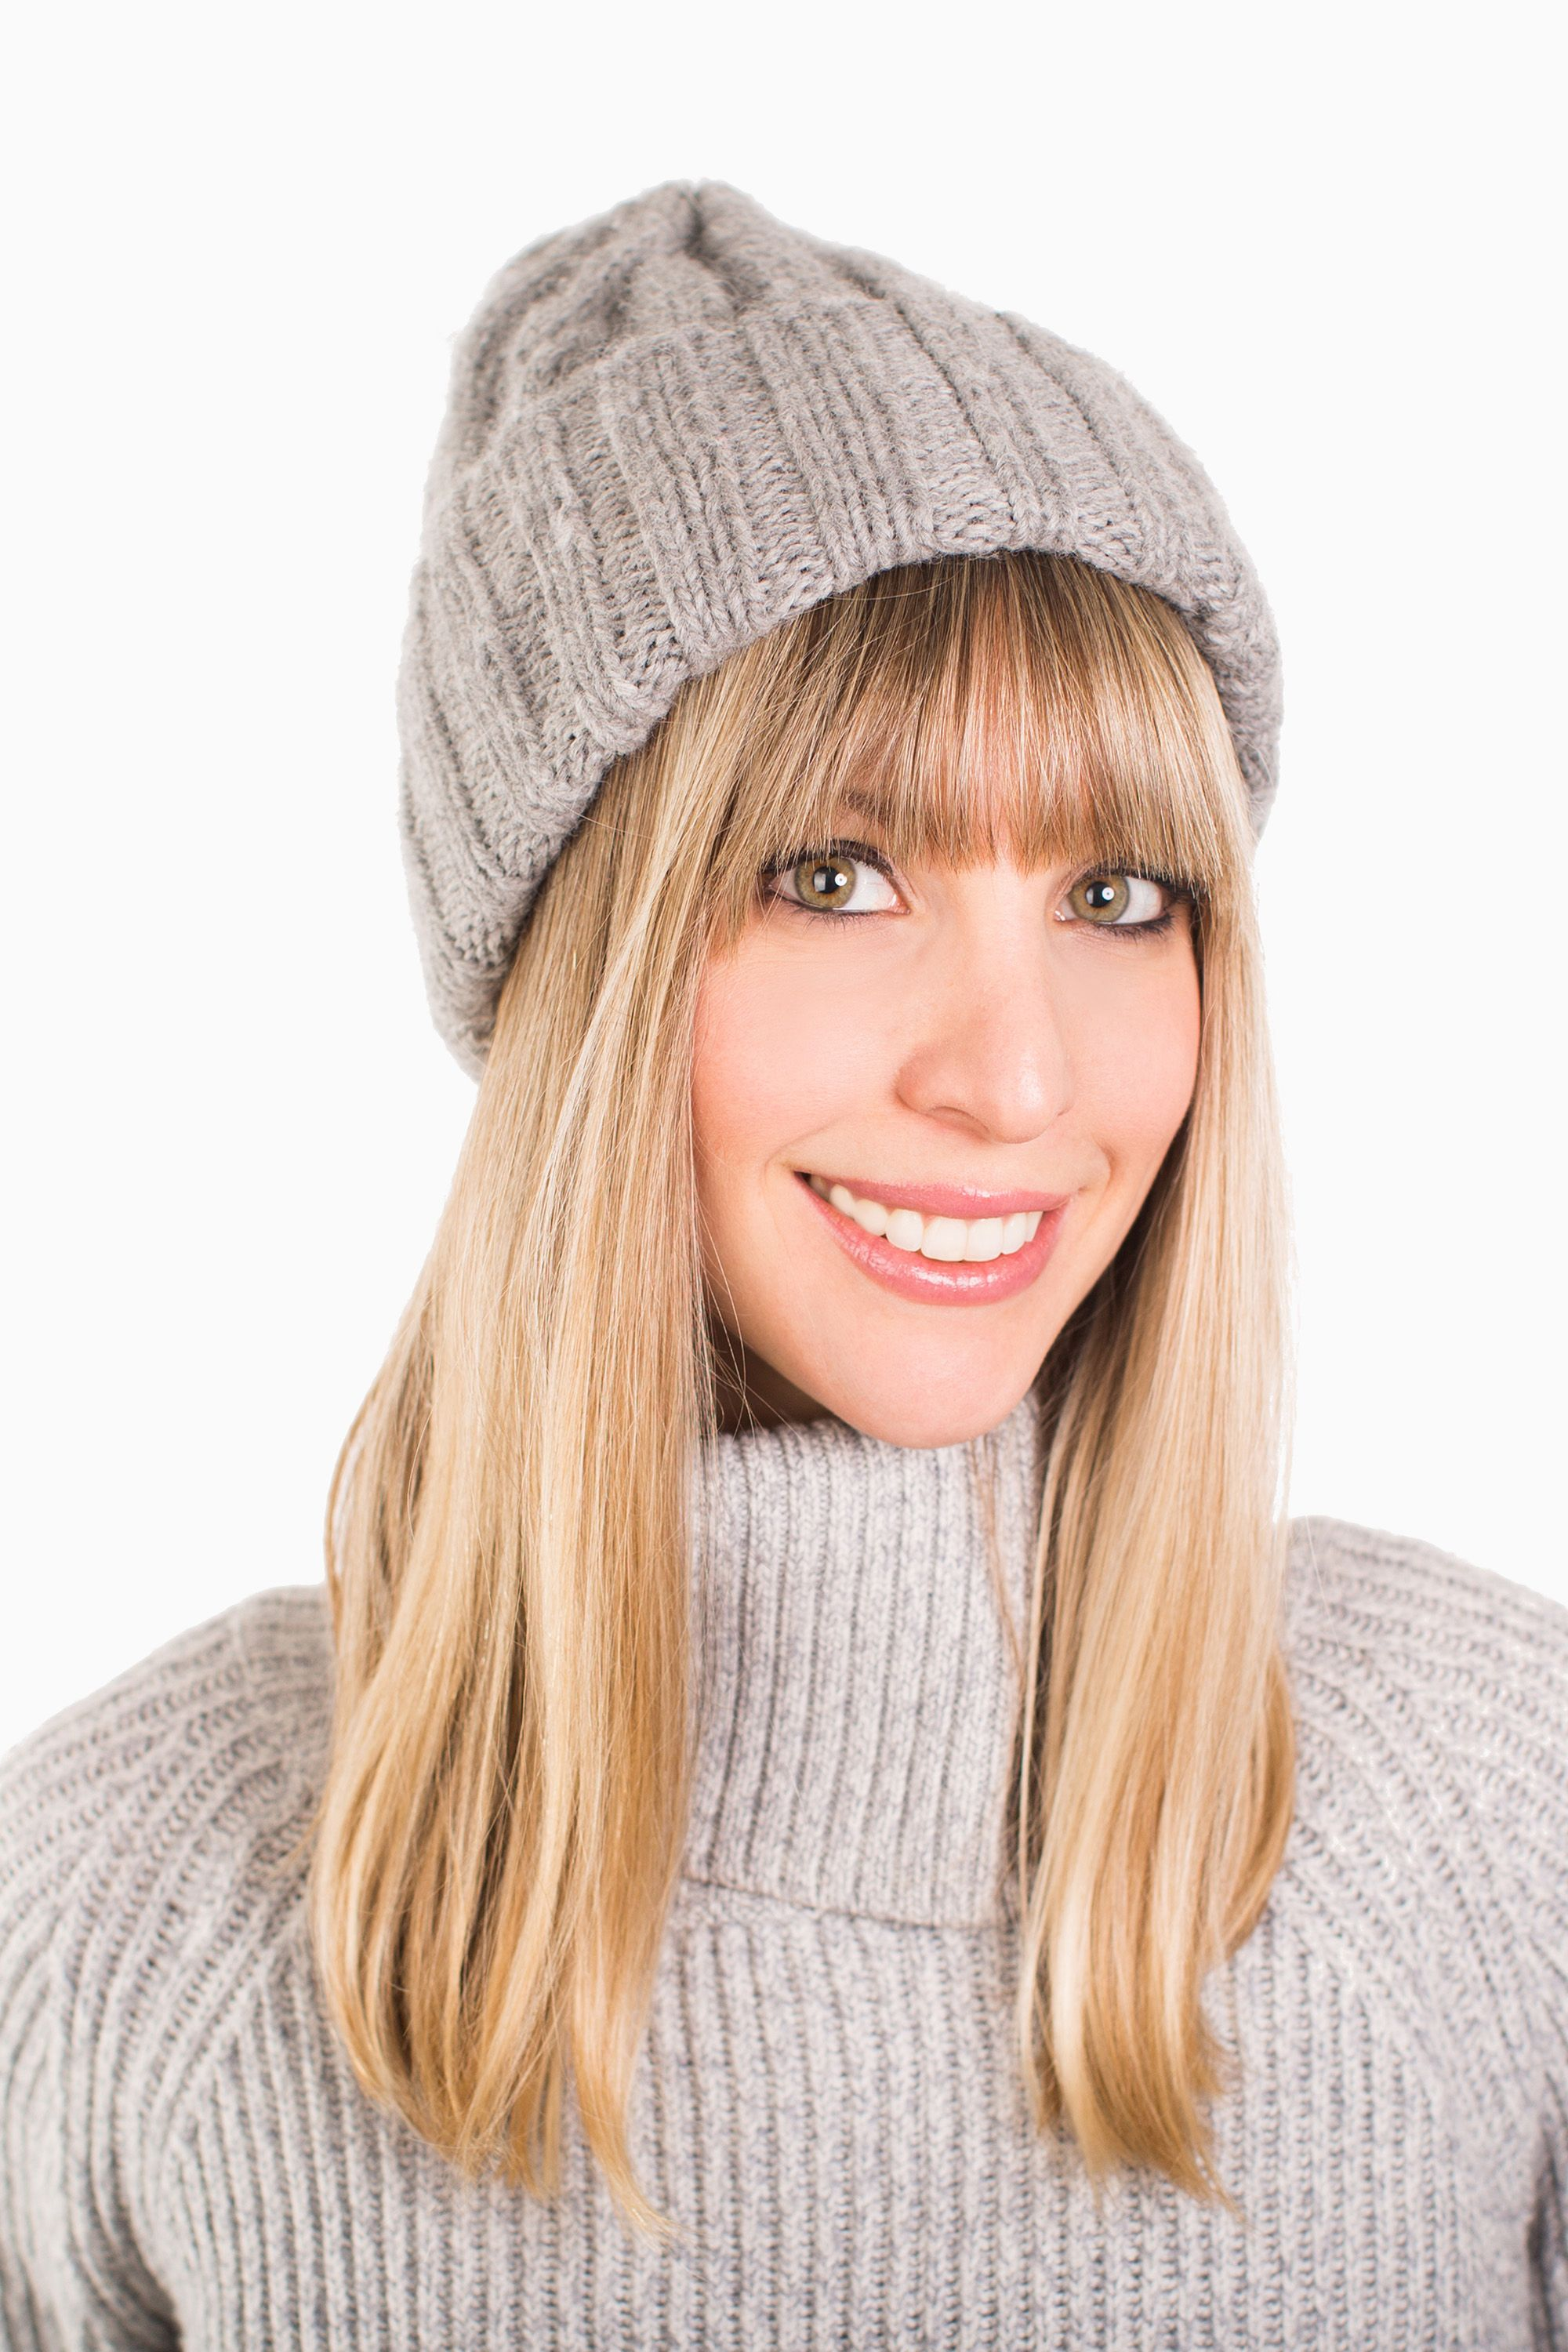 d1b380b6a0e The Takeaway  Highlight Bangs Wear your beanie folded and slightly back on  the crown of the head to keep face-framing fringe front and center.